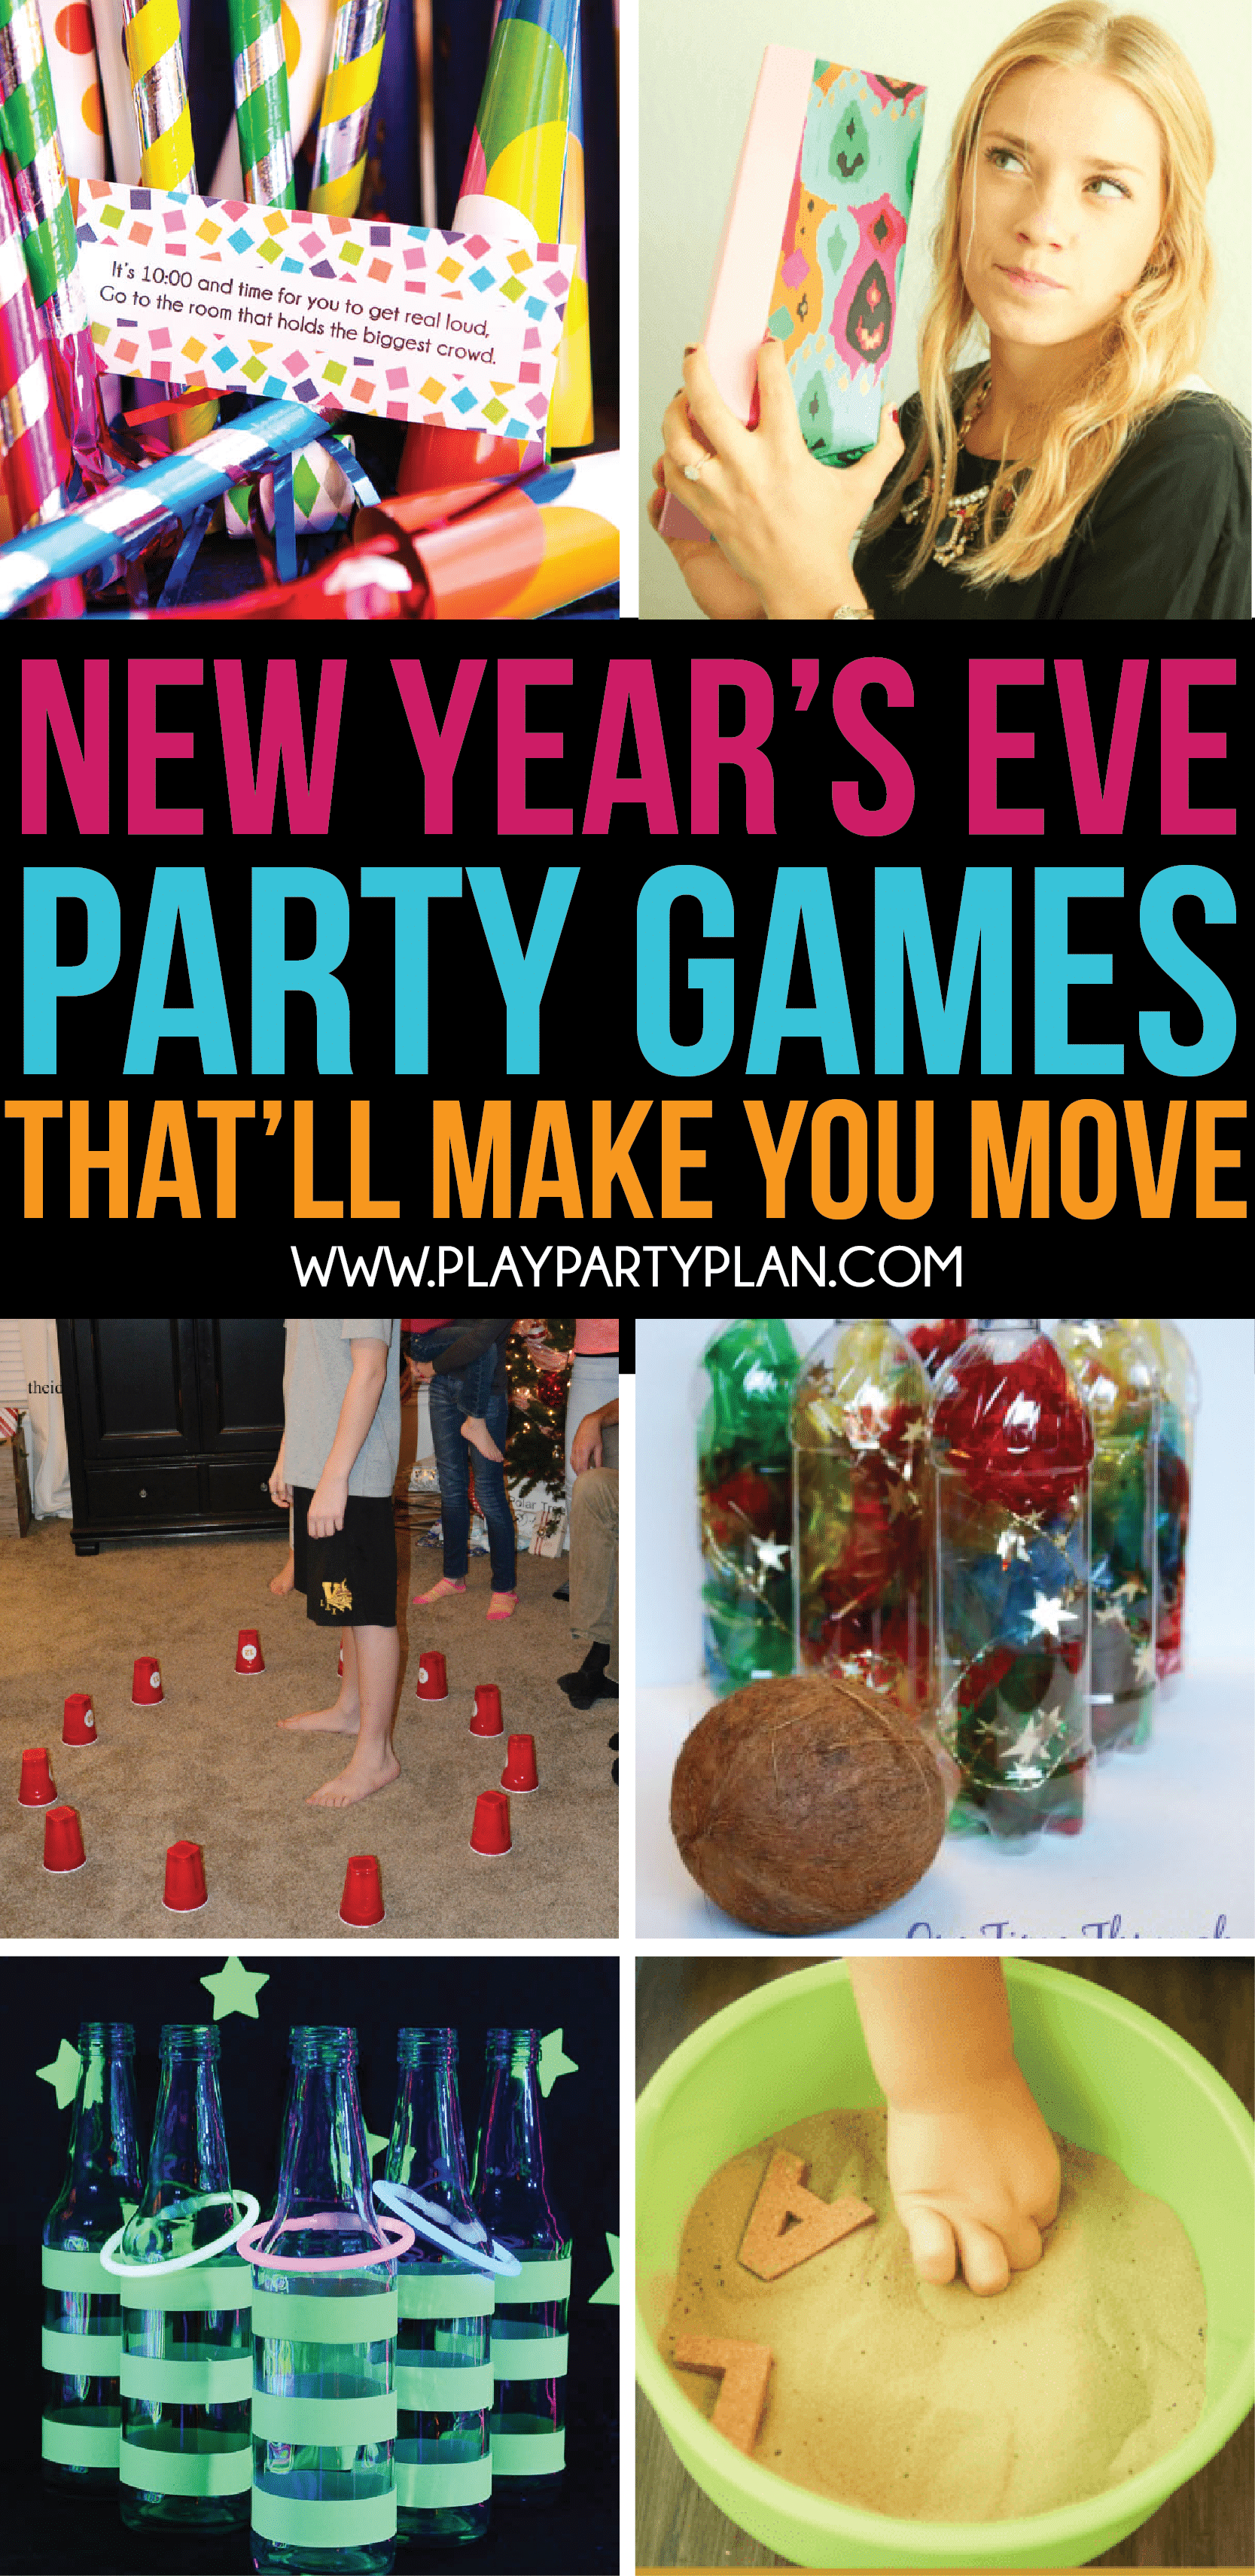 Fun Games To Play On New Years Eve